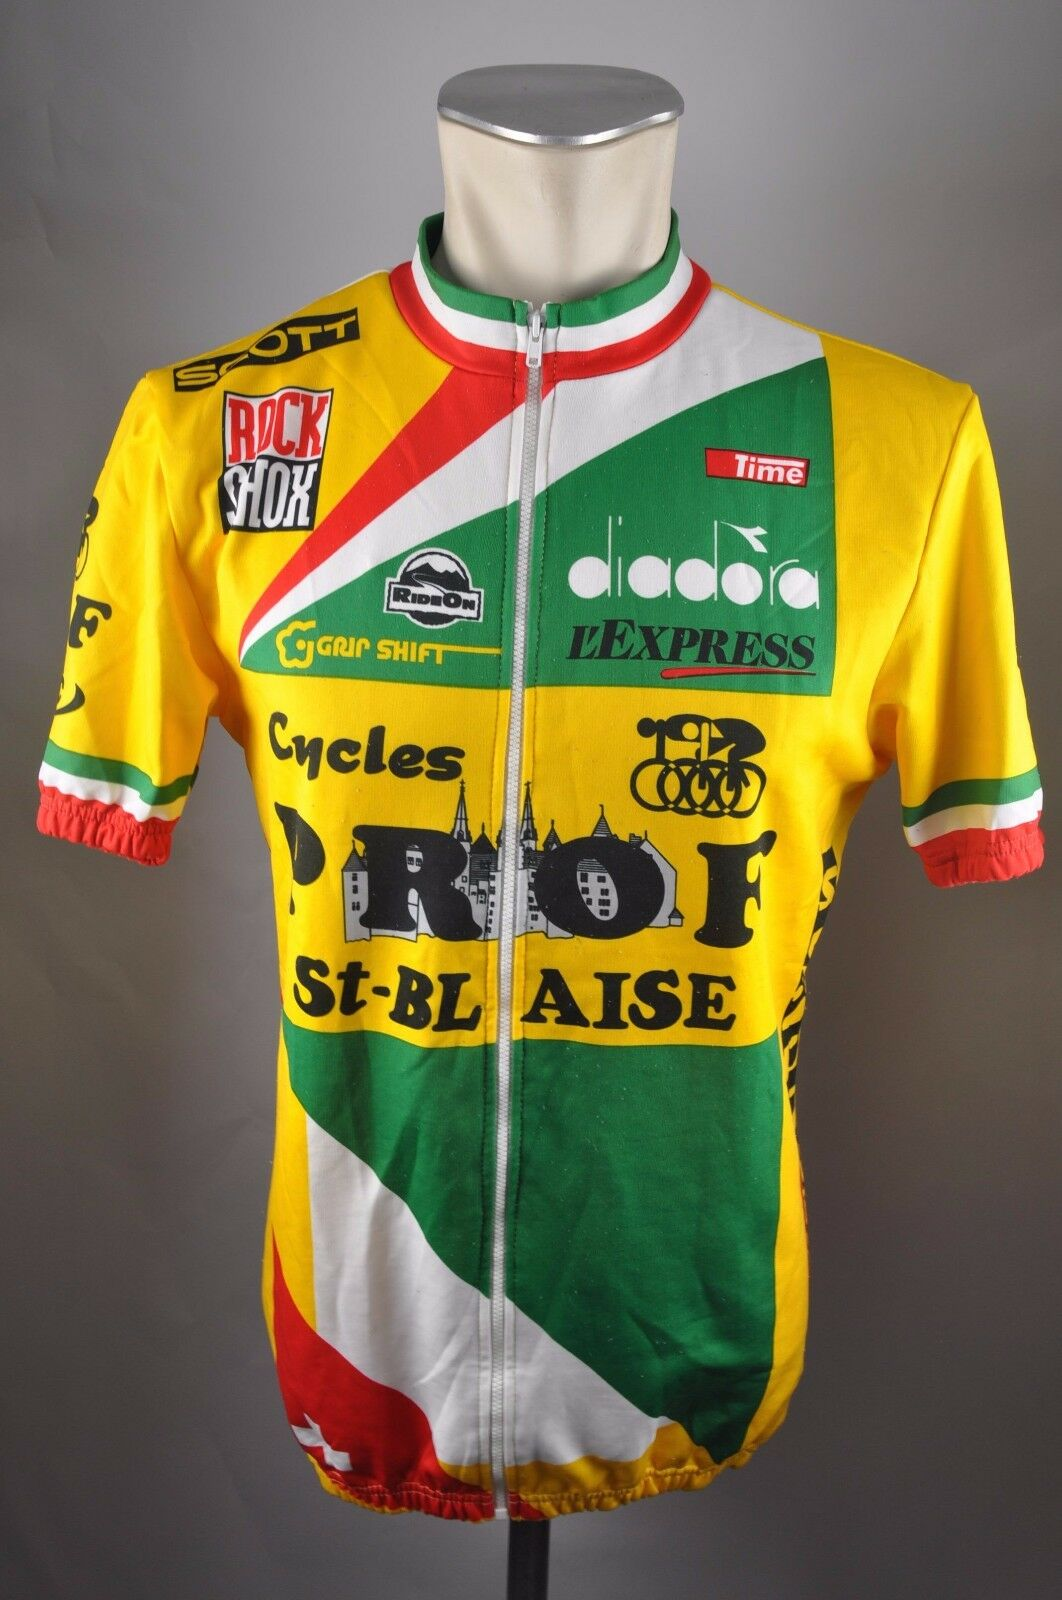 Vintage Rad Cykel Cycle Trikot Jersey Maglia Cycles Prof St-Blaise Gr. 5 R3